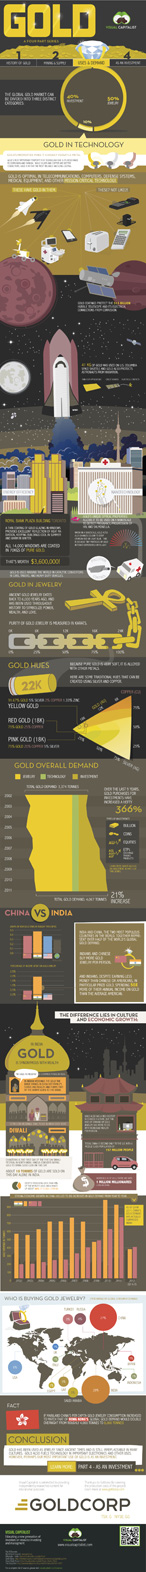 gold-infographic-demand